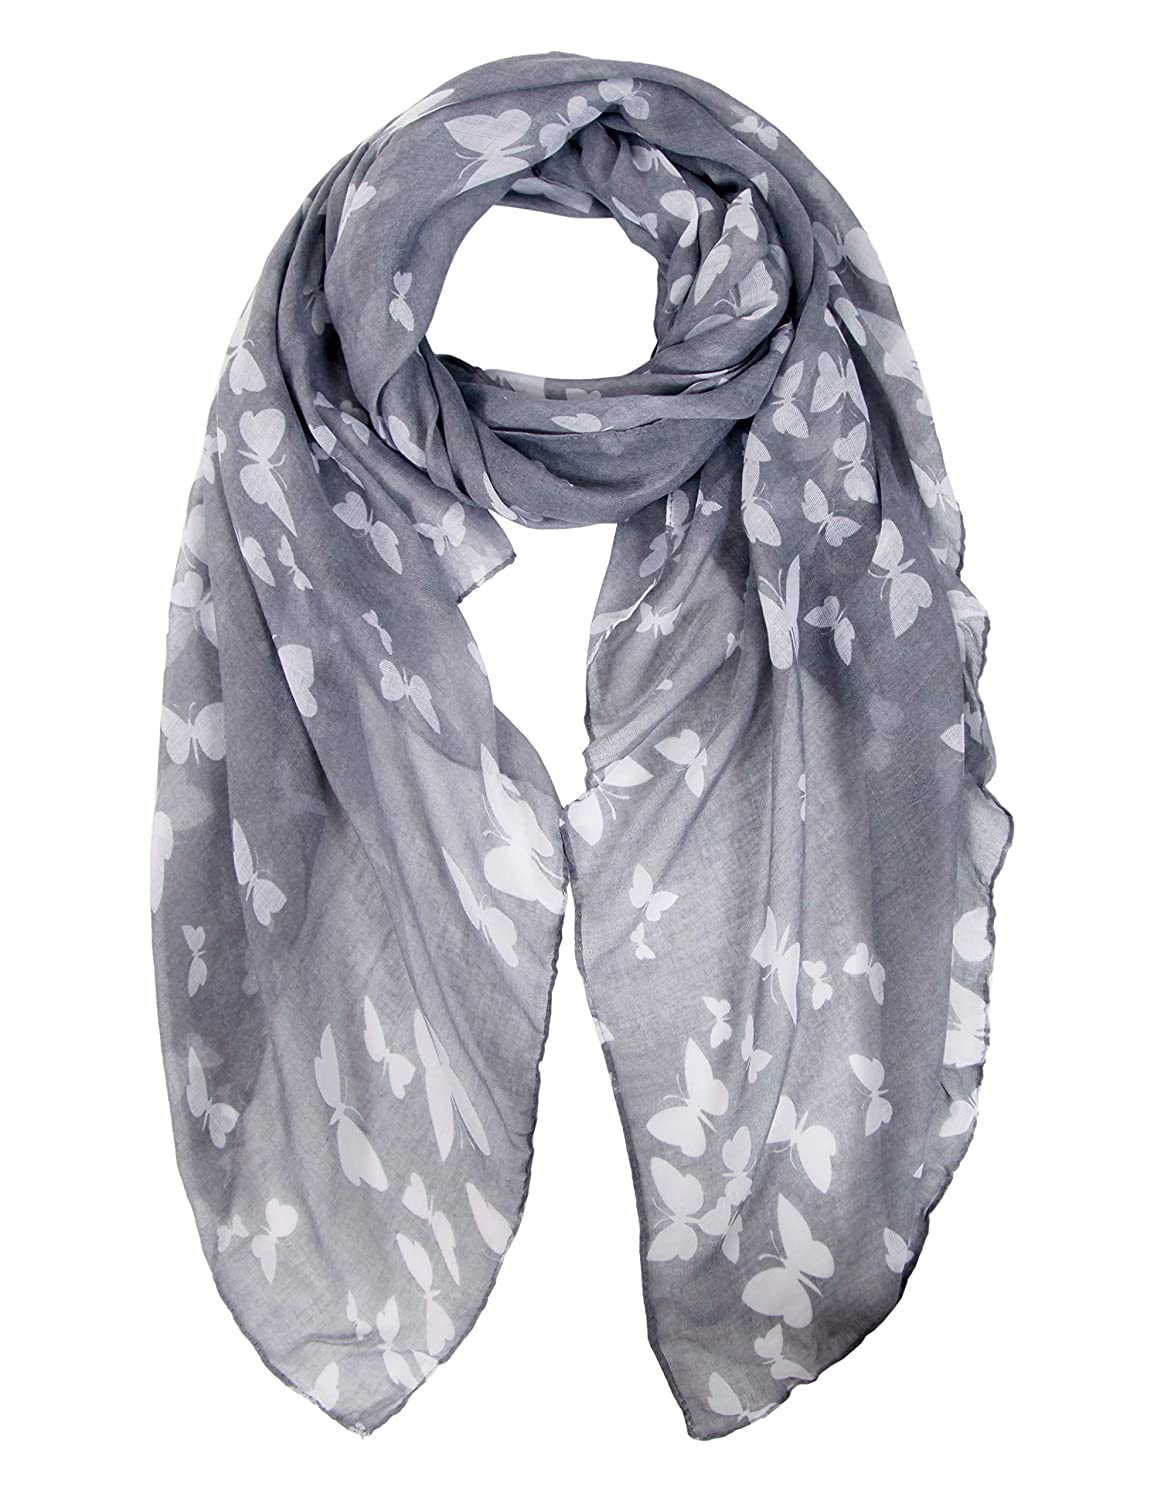 717291898c391 Ladies Women's Fashion Butterfly Print Long Scarves Floral Neck Scarf Shawl  Wrap (Light Gray): Amazon.co.uk: Clothing